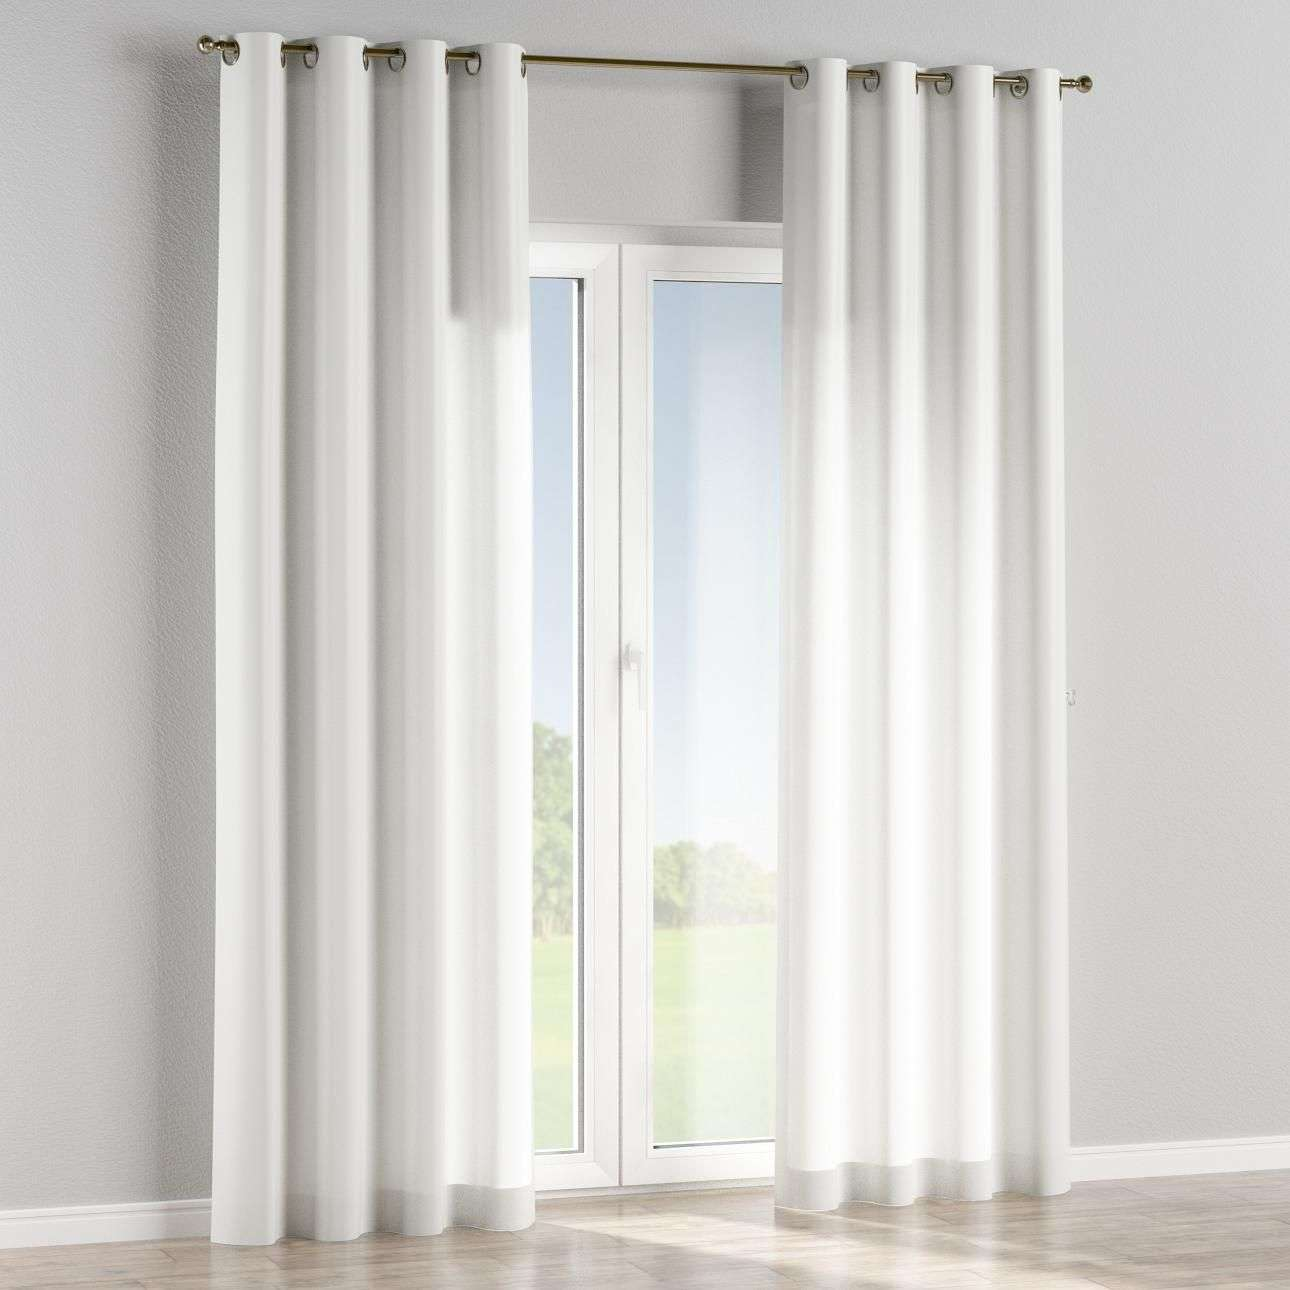 Eyelet curtains in collection Marina, fabric: 140-16